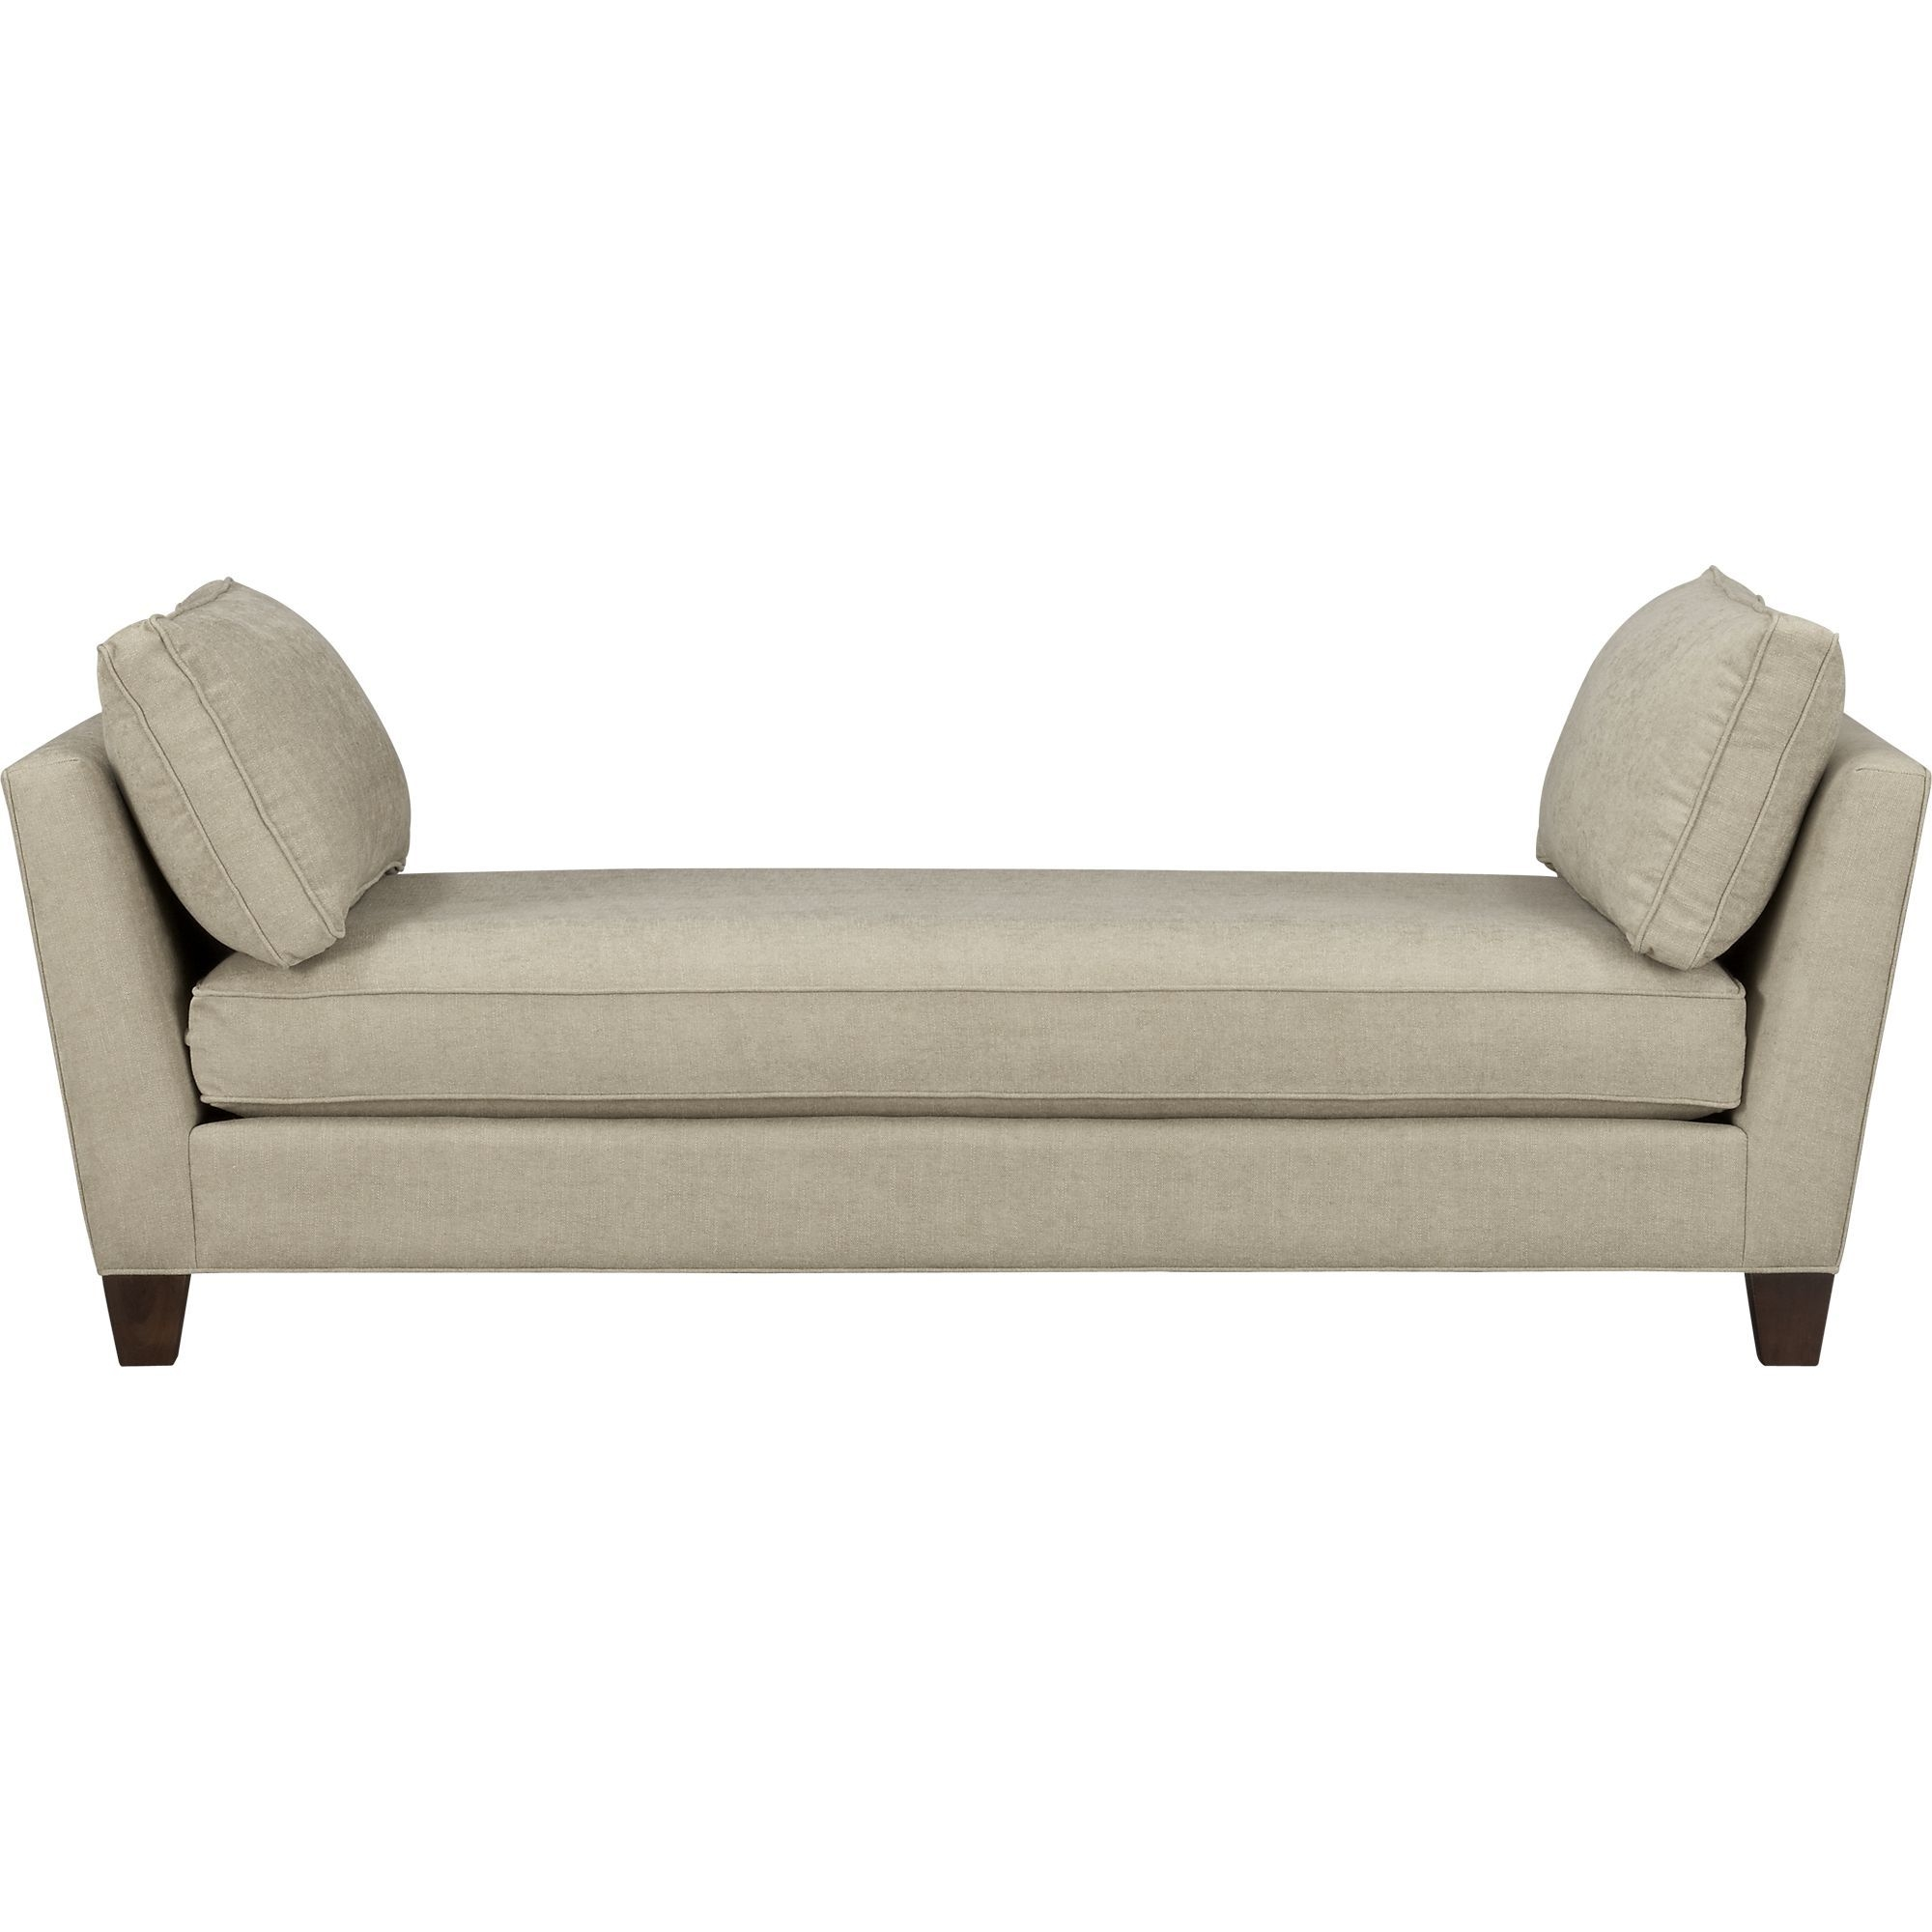 Merveilleux Backless Sofa Daybed